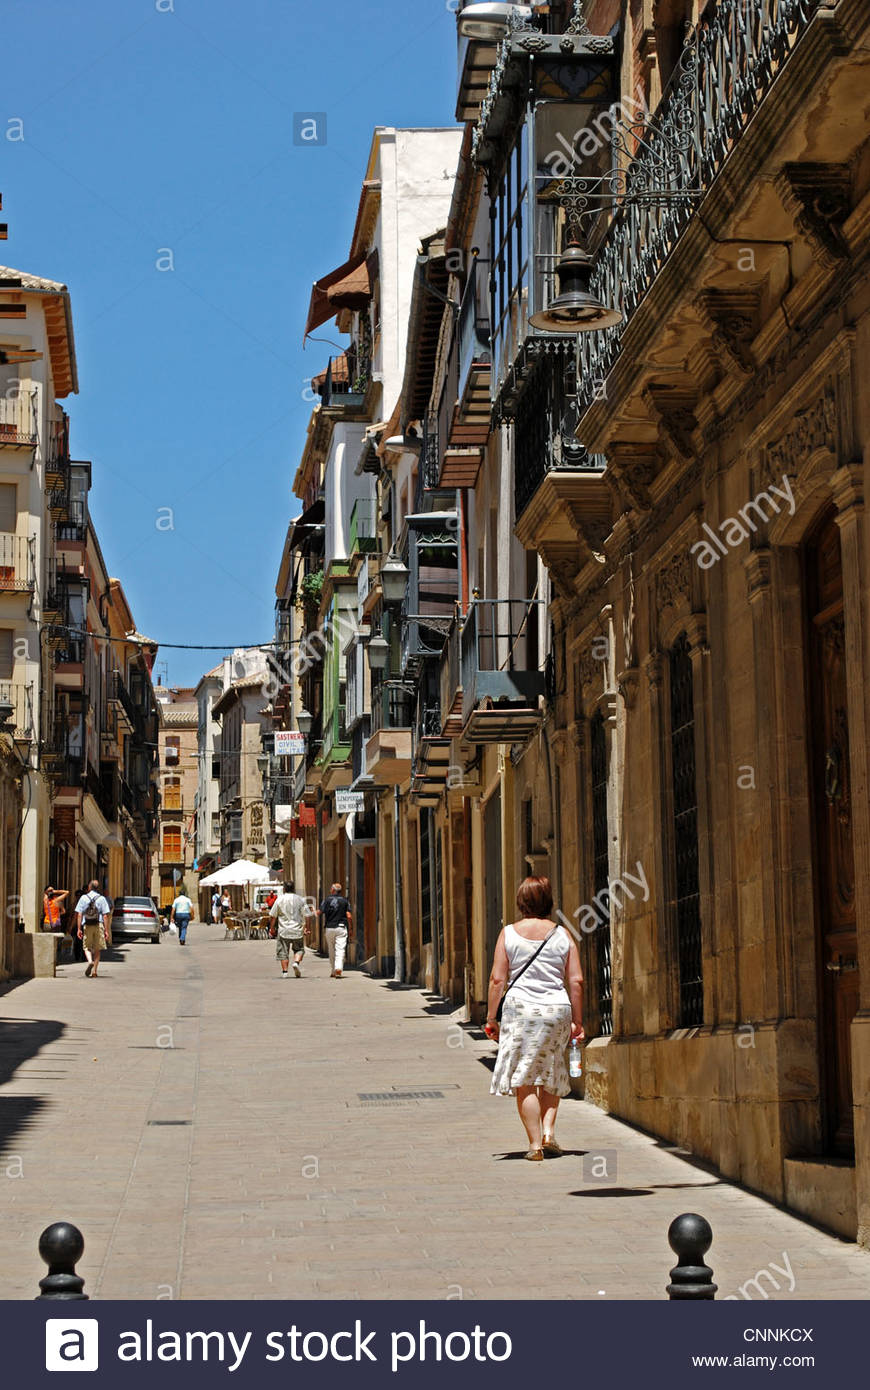 Old stone houses and shops in narrow street, Ubeda, Jaen Province, Andalucia, Spain, Western Europe. Stock Photo